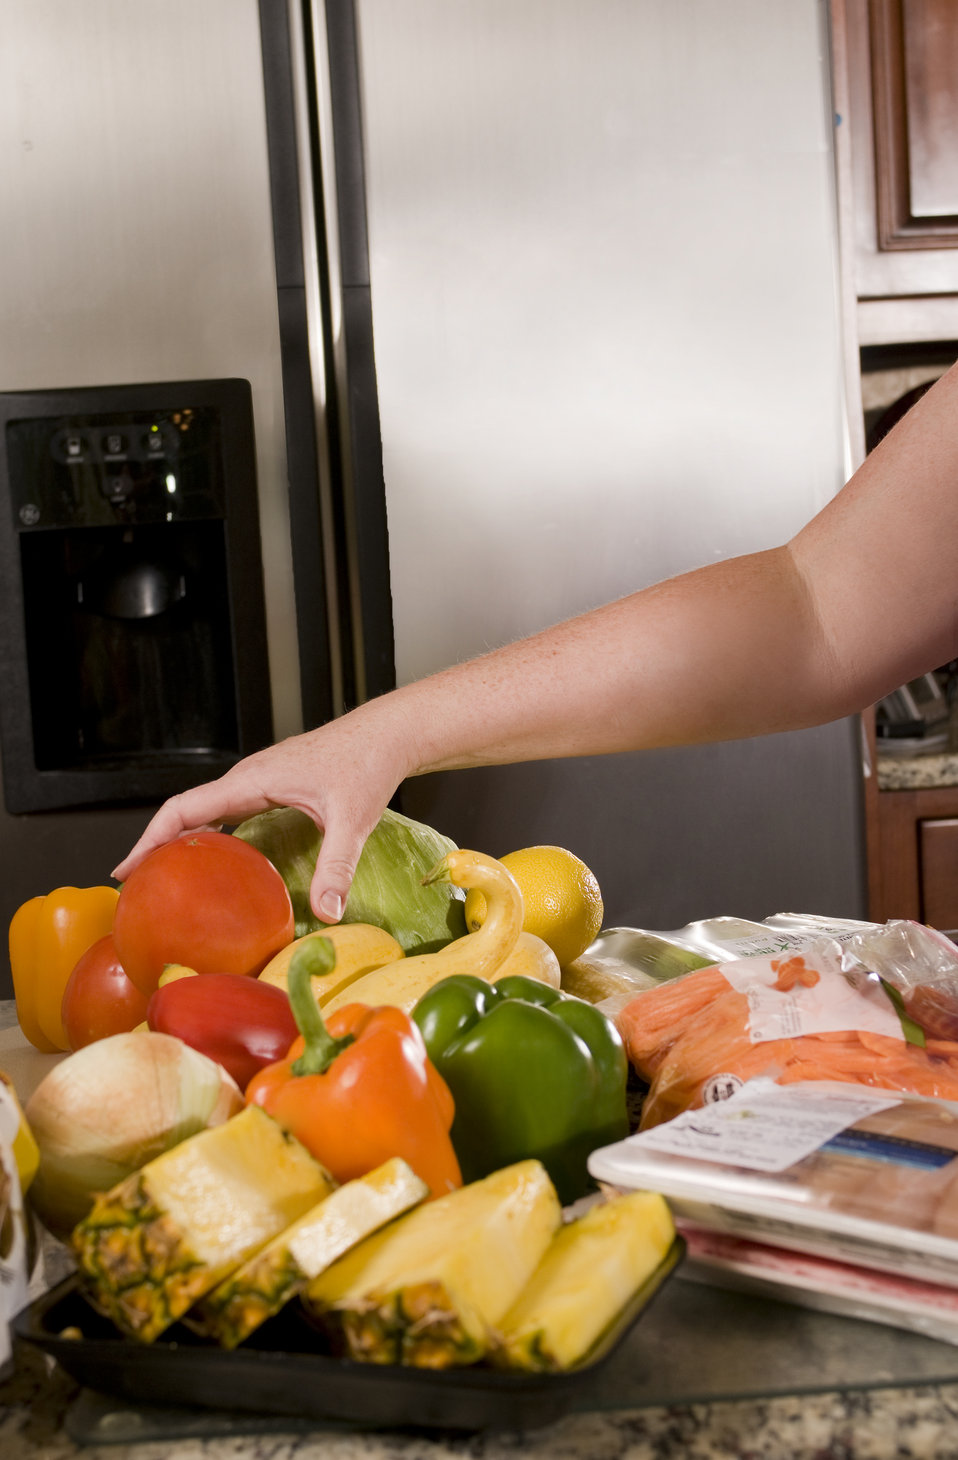 This image depicts a woman's arm reaching for a tomato amongst a cache of newly-purchased groceries atop her sink's countertop, The grocery